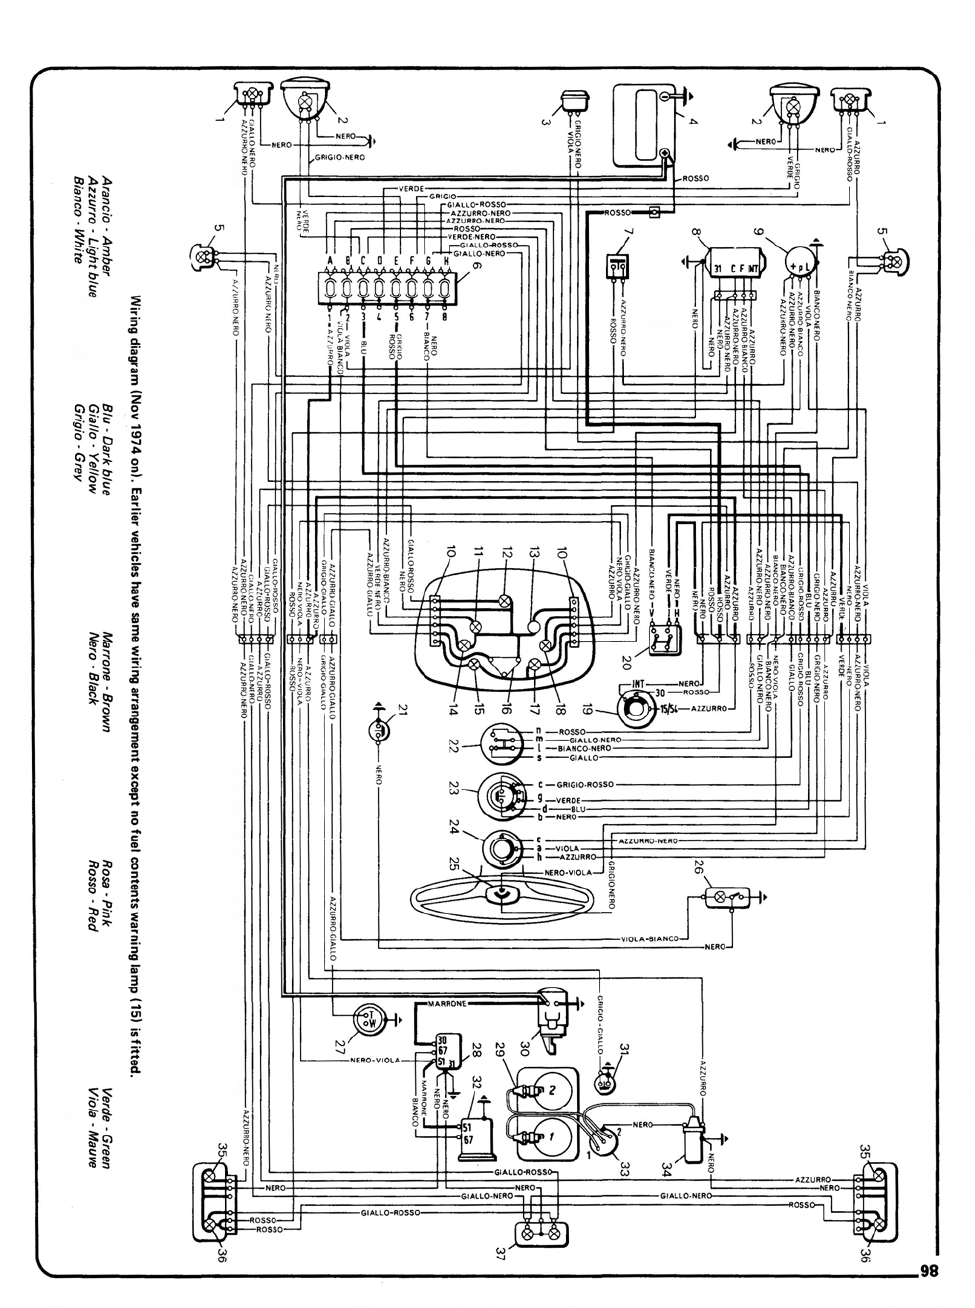 Fiat Wiring Diagram Just Another Blog Ducato Download 126 Misc Documents Pdf